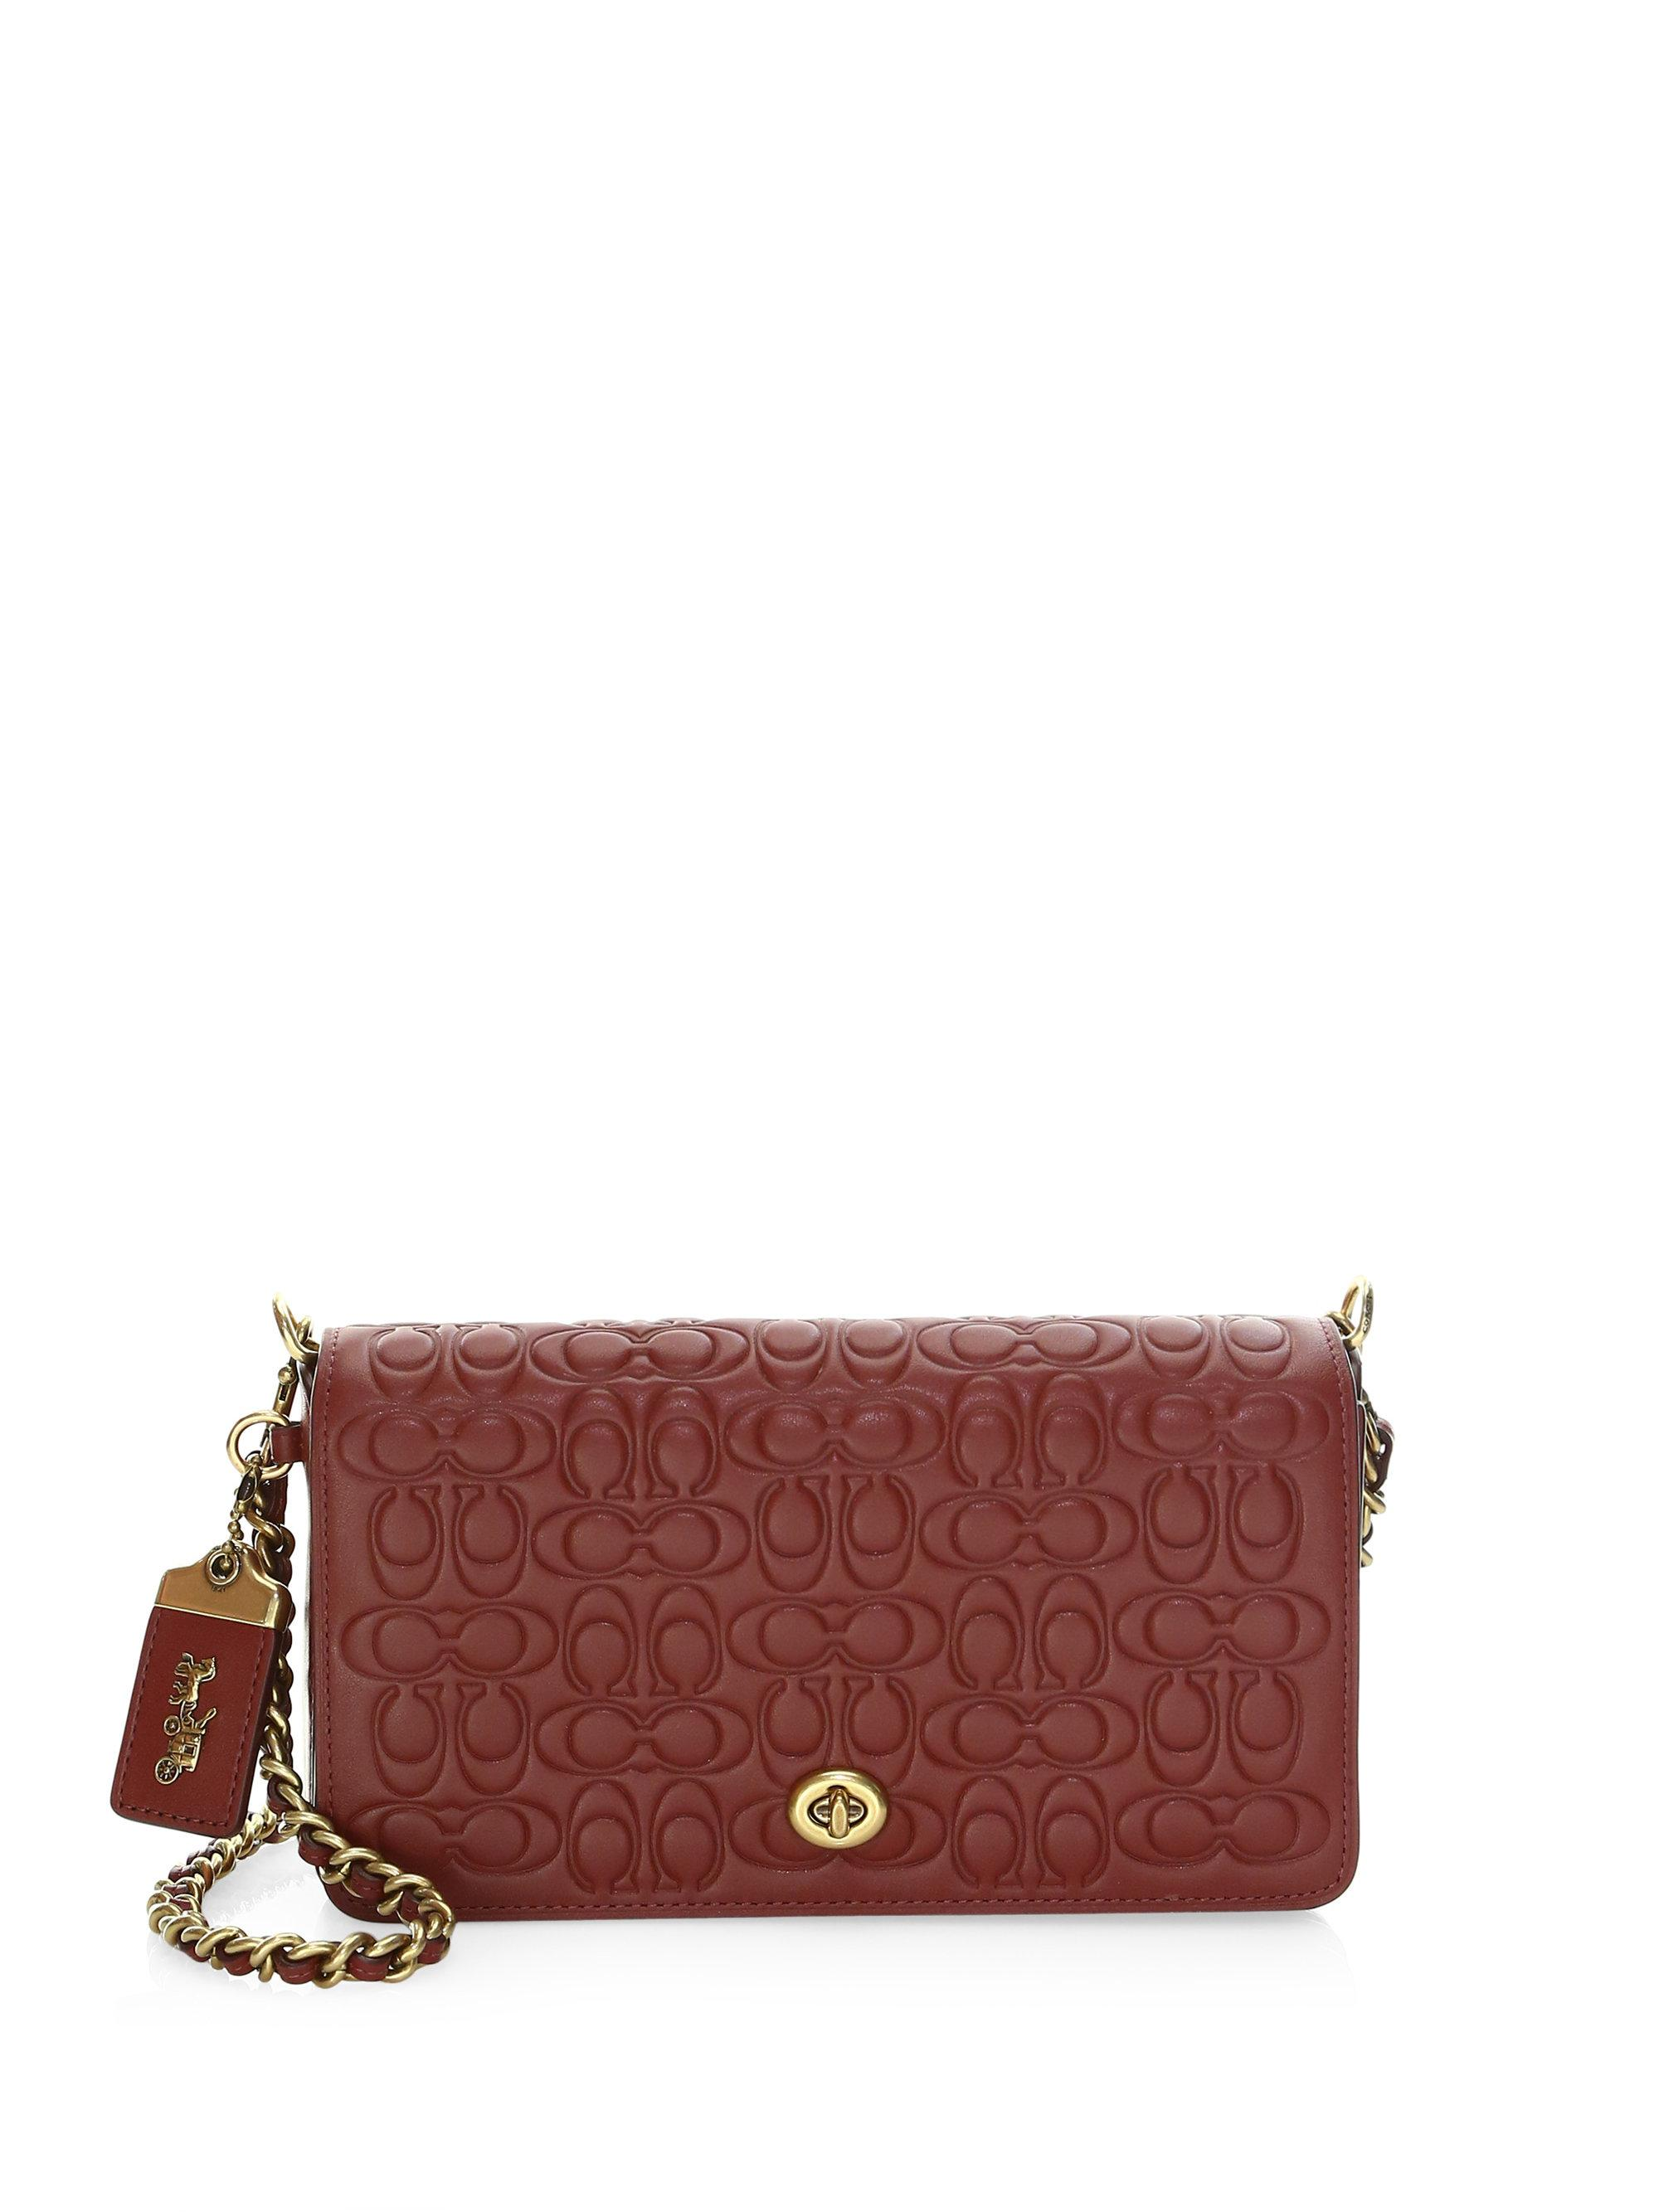 68c7d5f45824 COACH Signature Leather Dinky Crossbody Bag in Red - Lyst